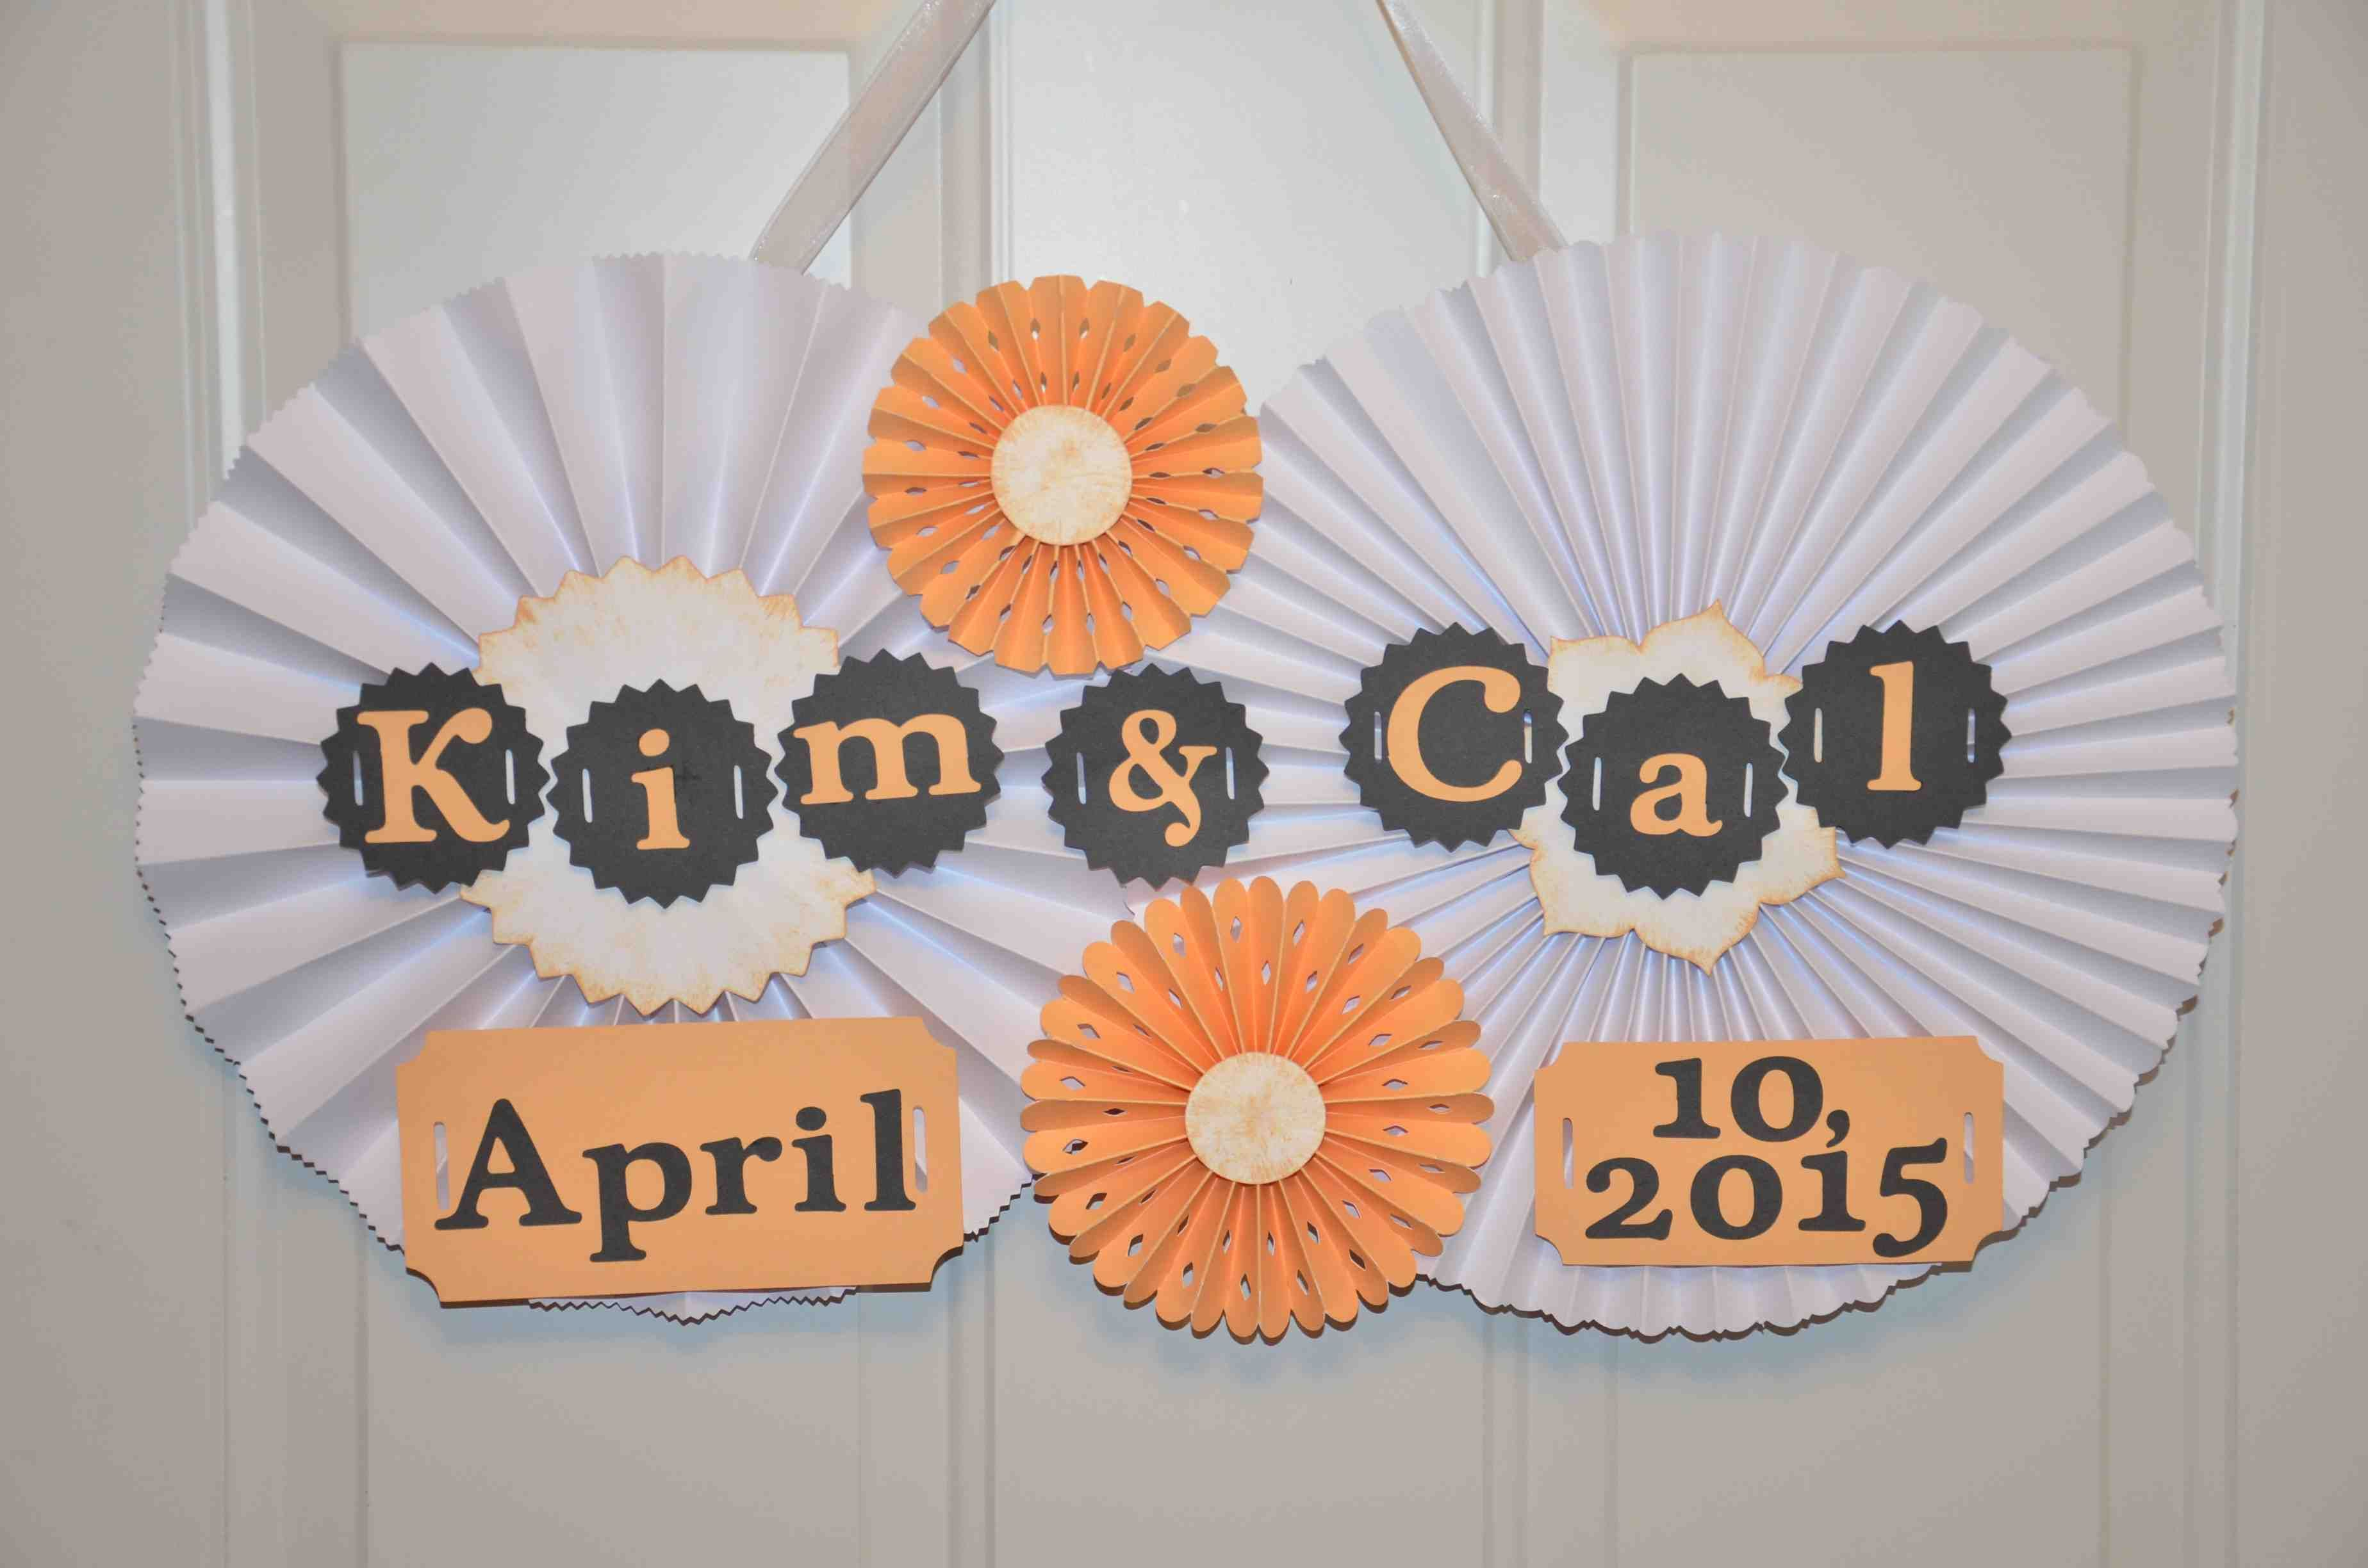 Paper rosette wedding hanging door sign available at https://www.facebook.com/ajs.craft.creations